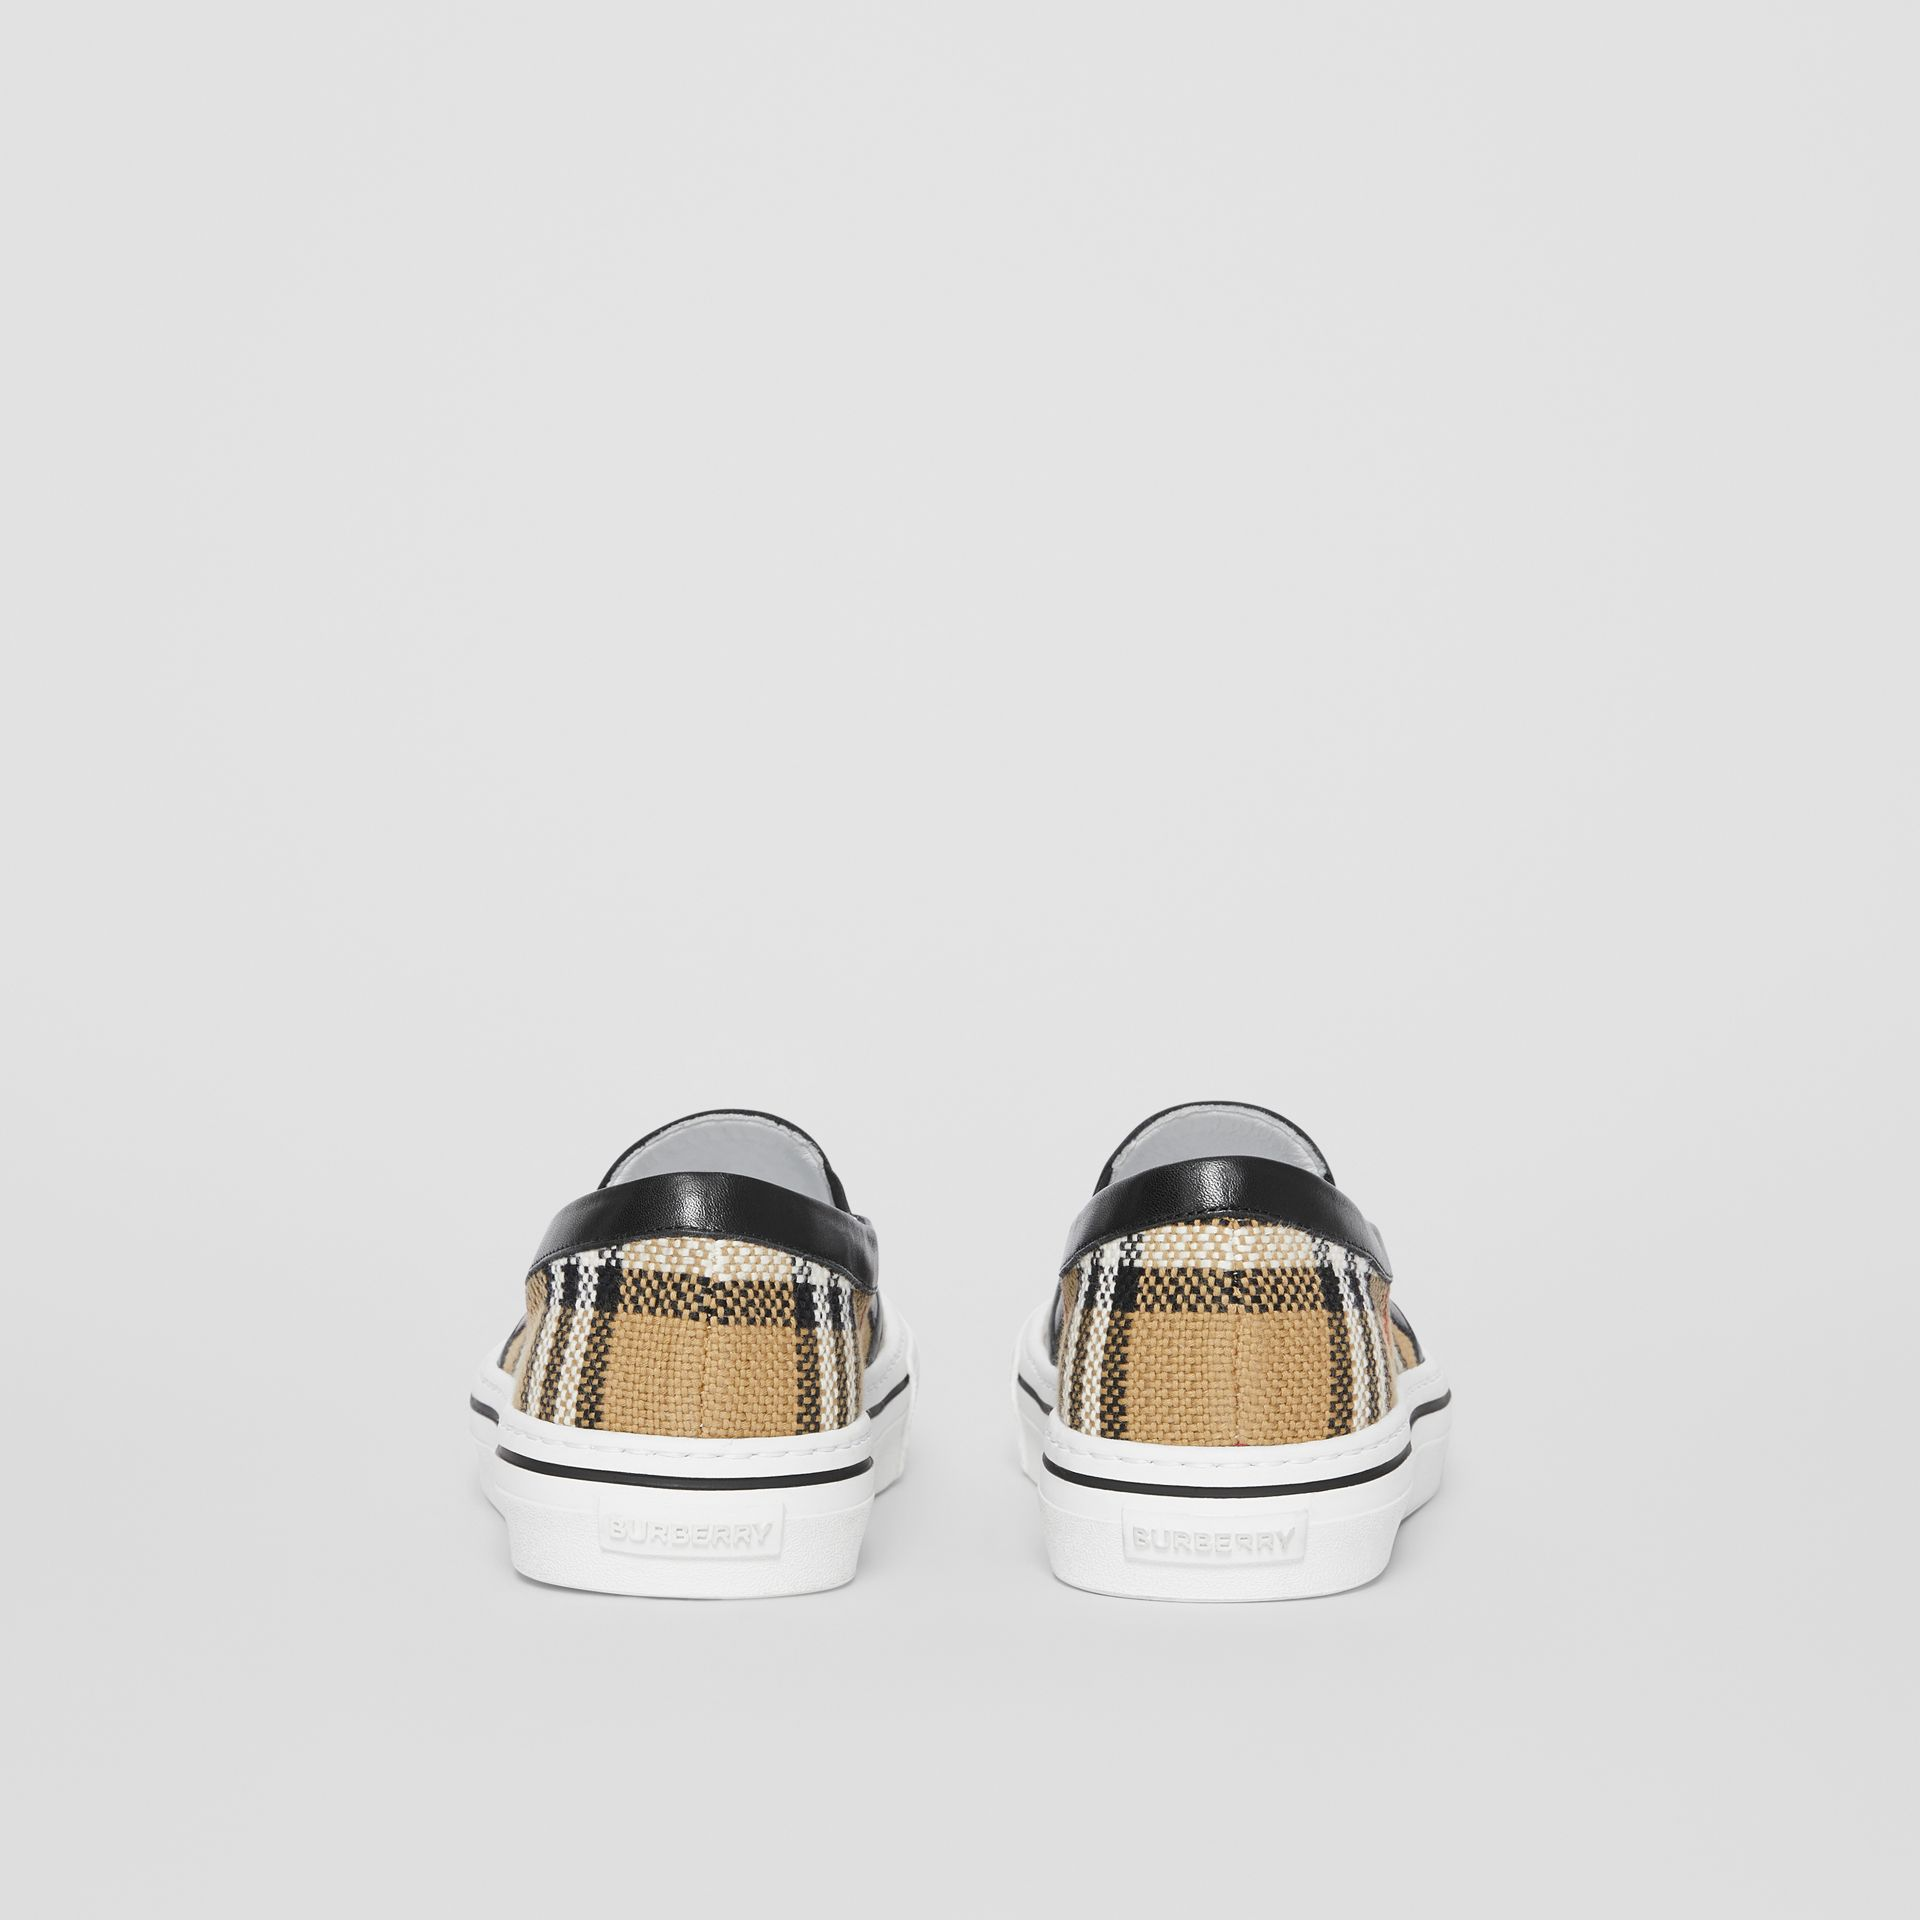 Vintage Check and Leather Slip-on Sneakers in Archive Beige - Women | Burberry - gallery image 4